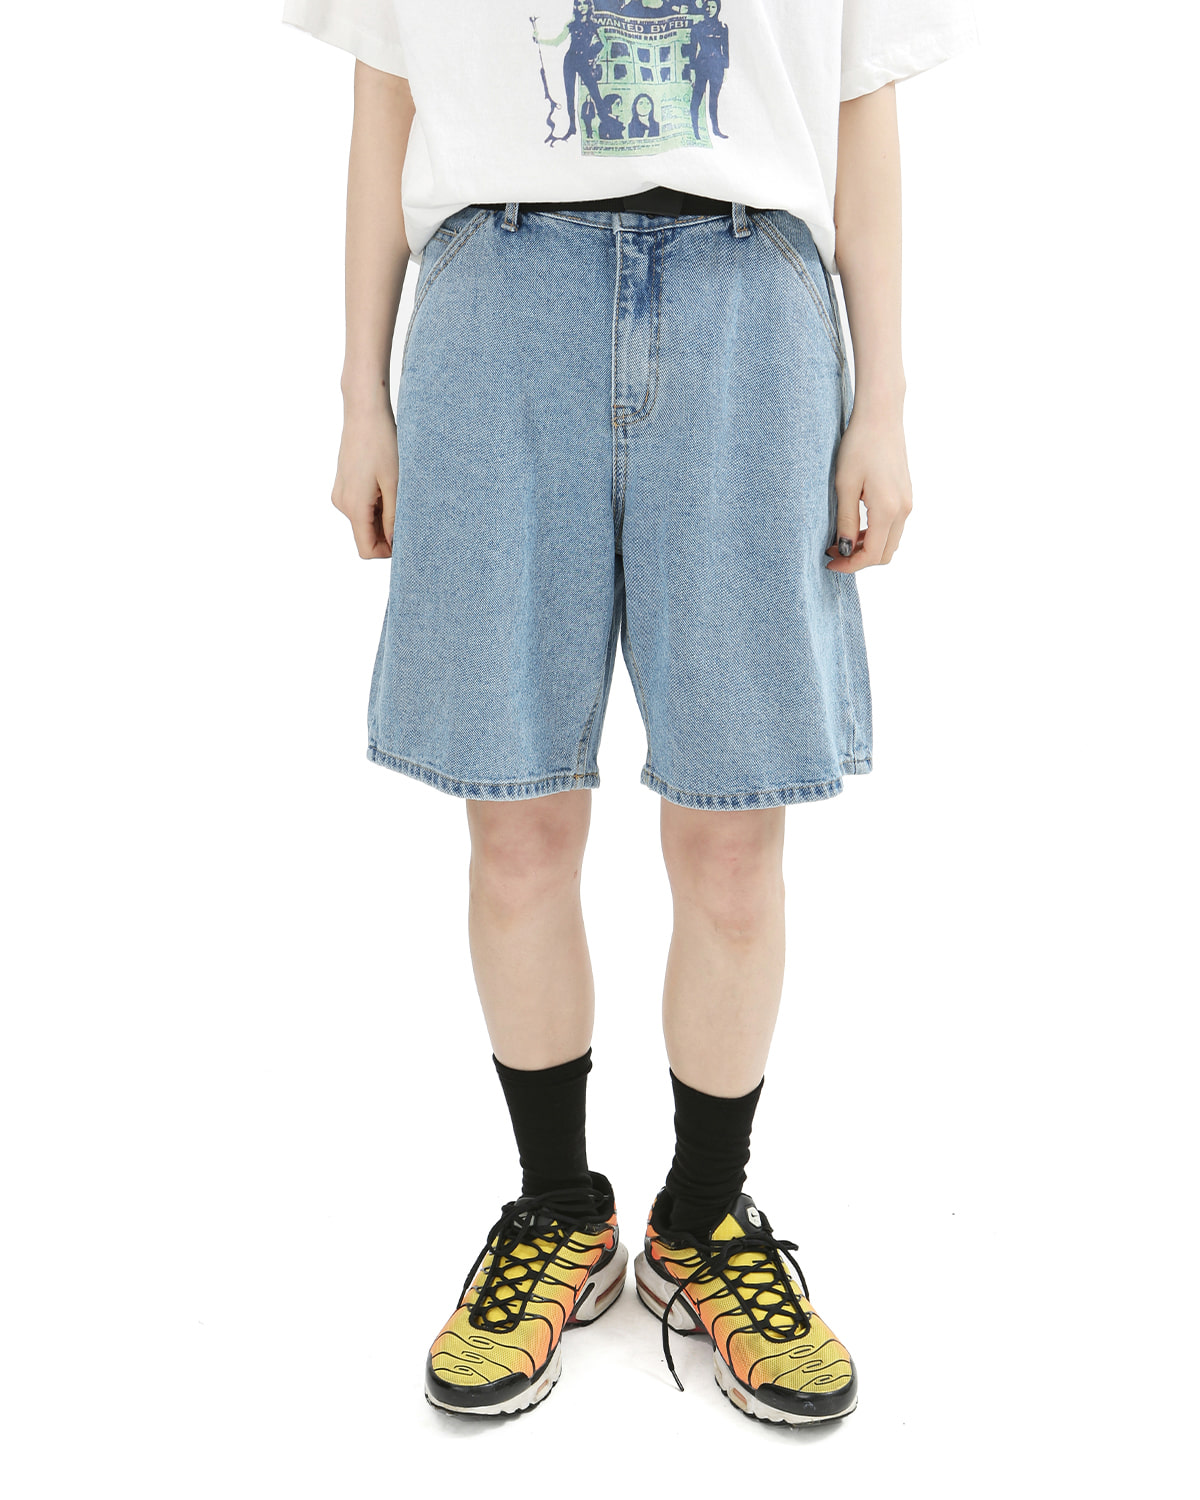 raucohouse-EASY WIDE HALF DENIM PANTS - RAUCO HOUSE♡韓國男裝褲子